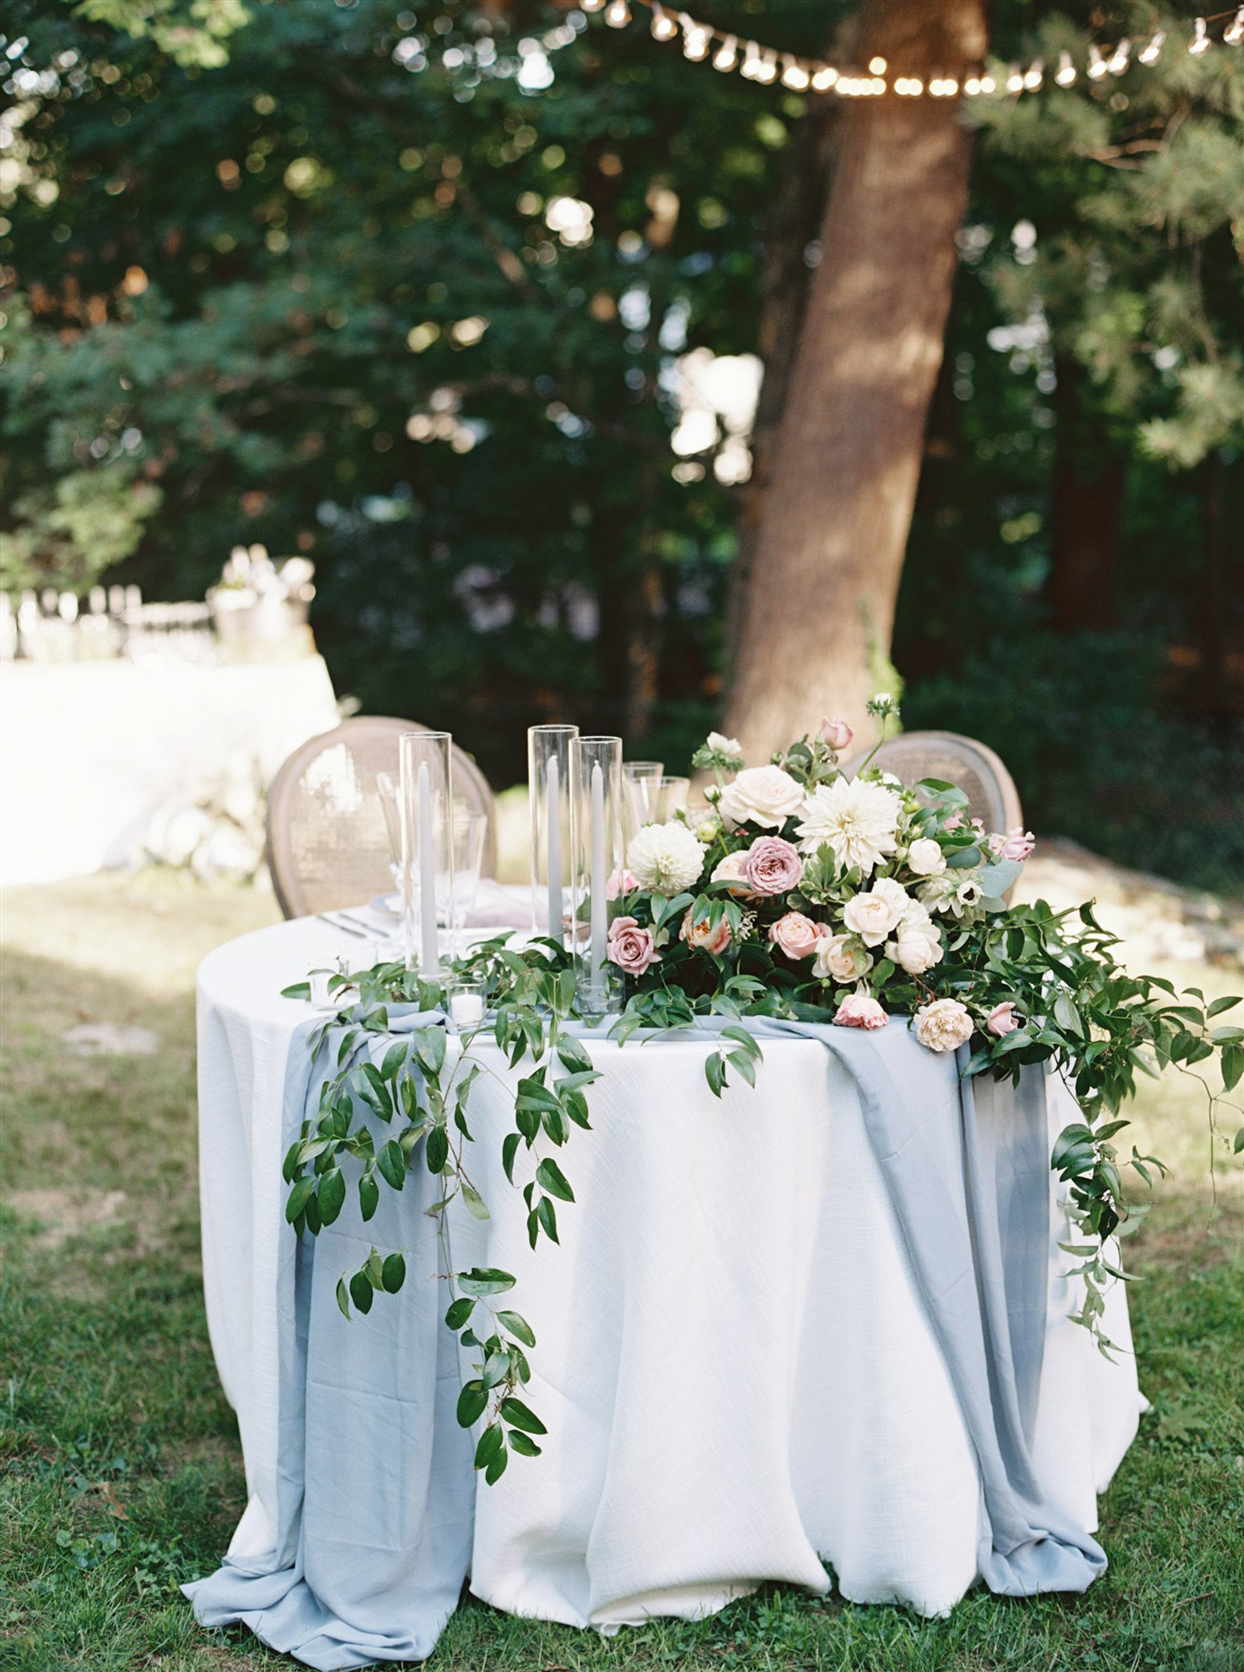 Bride and groom table setting with floral arrangement